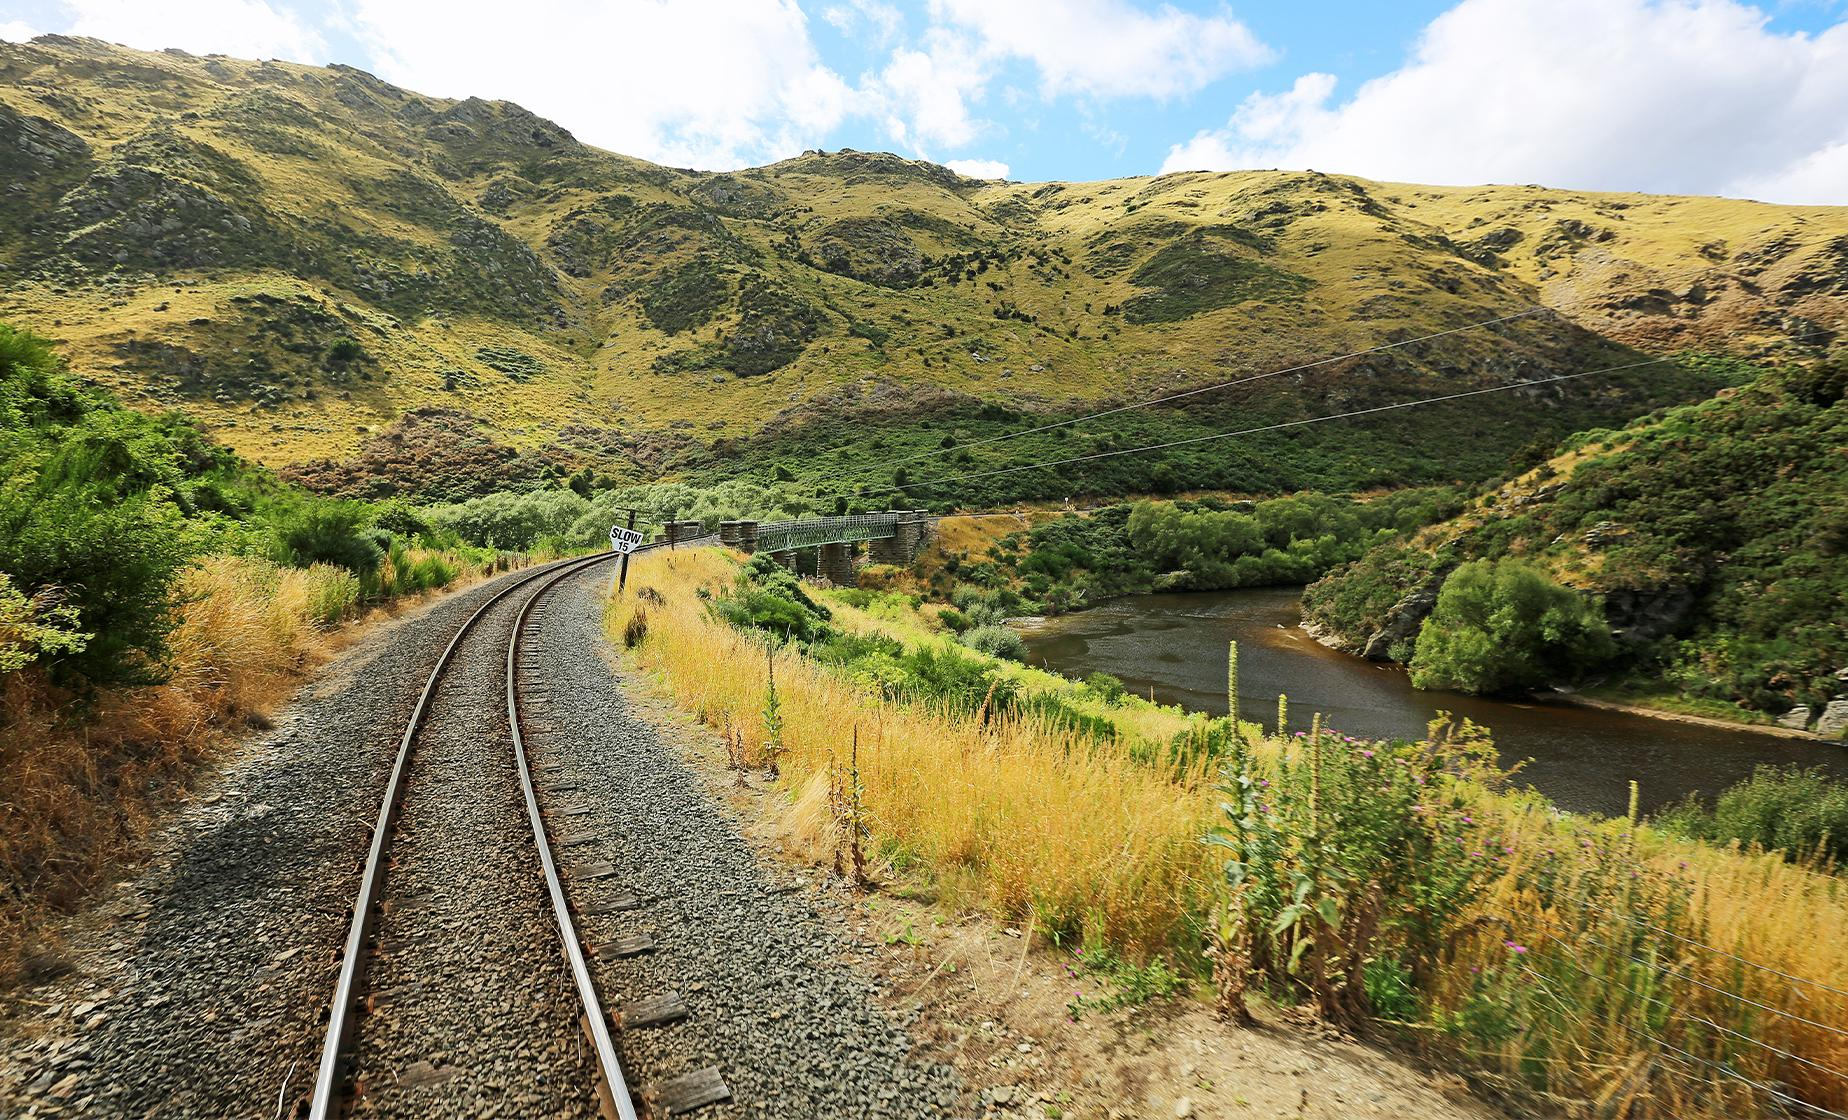 Taieri Gorge Railway and the Otago Peninsula (Port Chalmers, Taieri River)